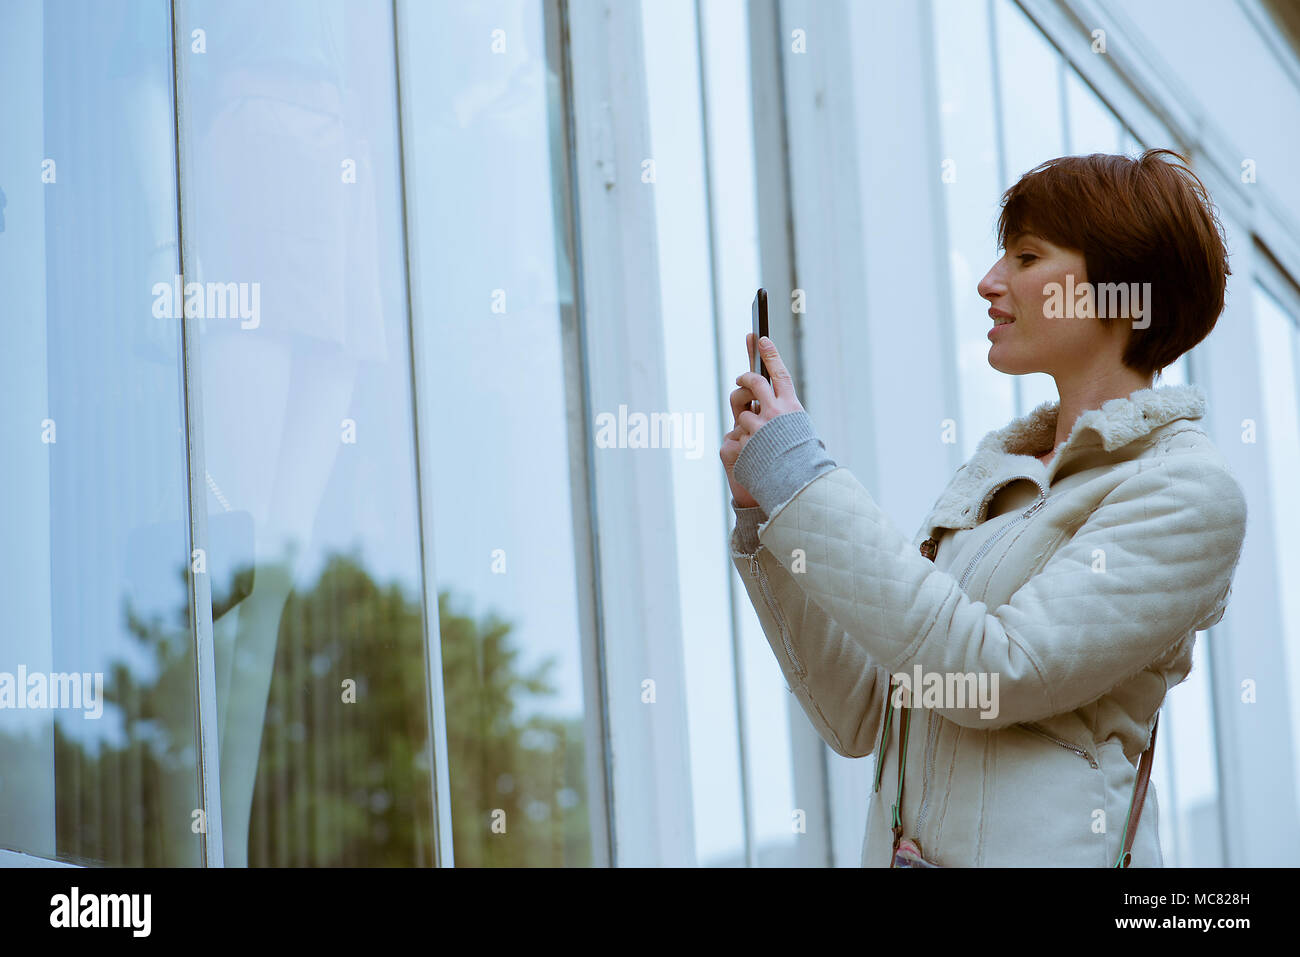 Woman photographing shop window with smartphone - Stock Image